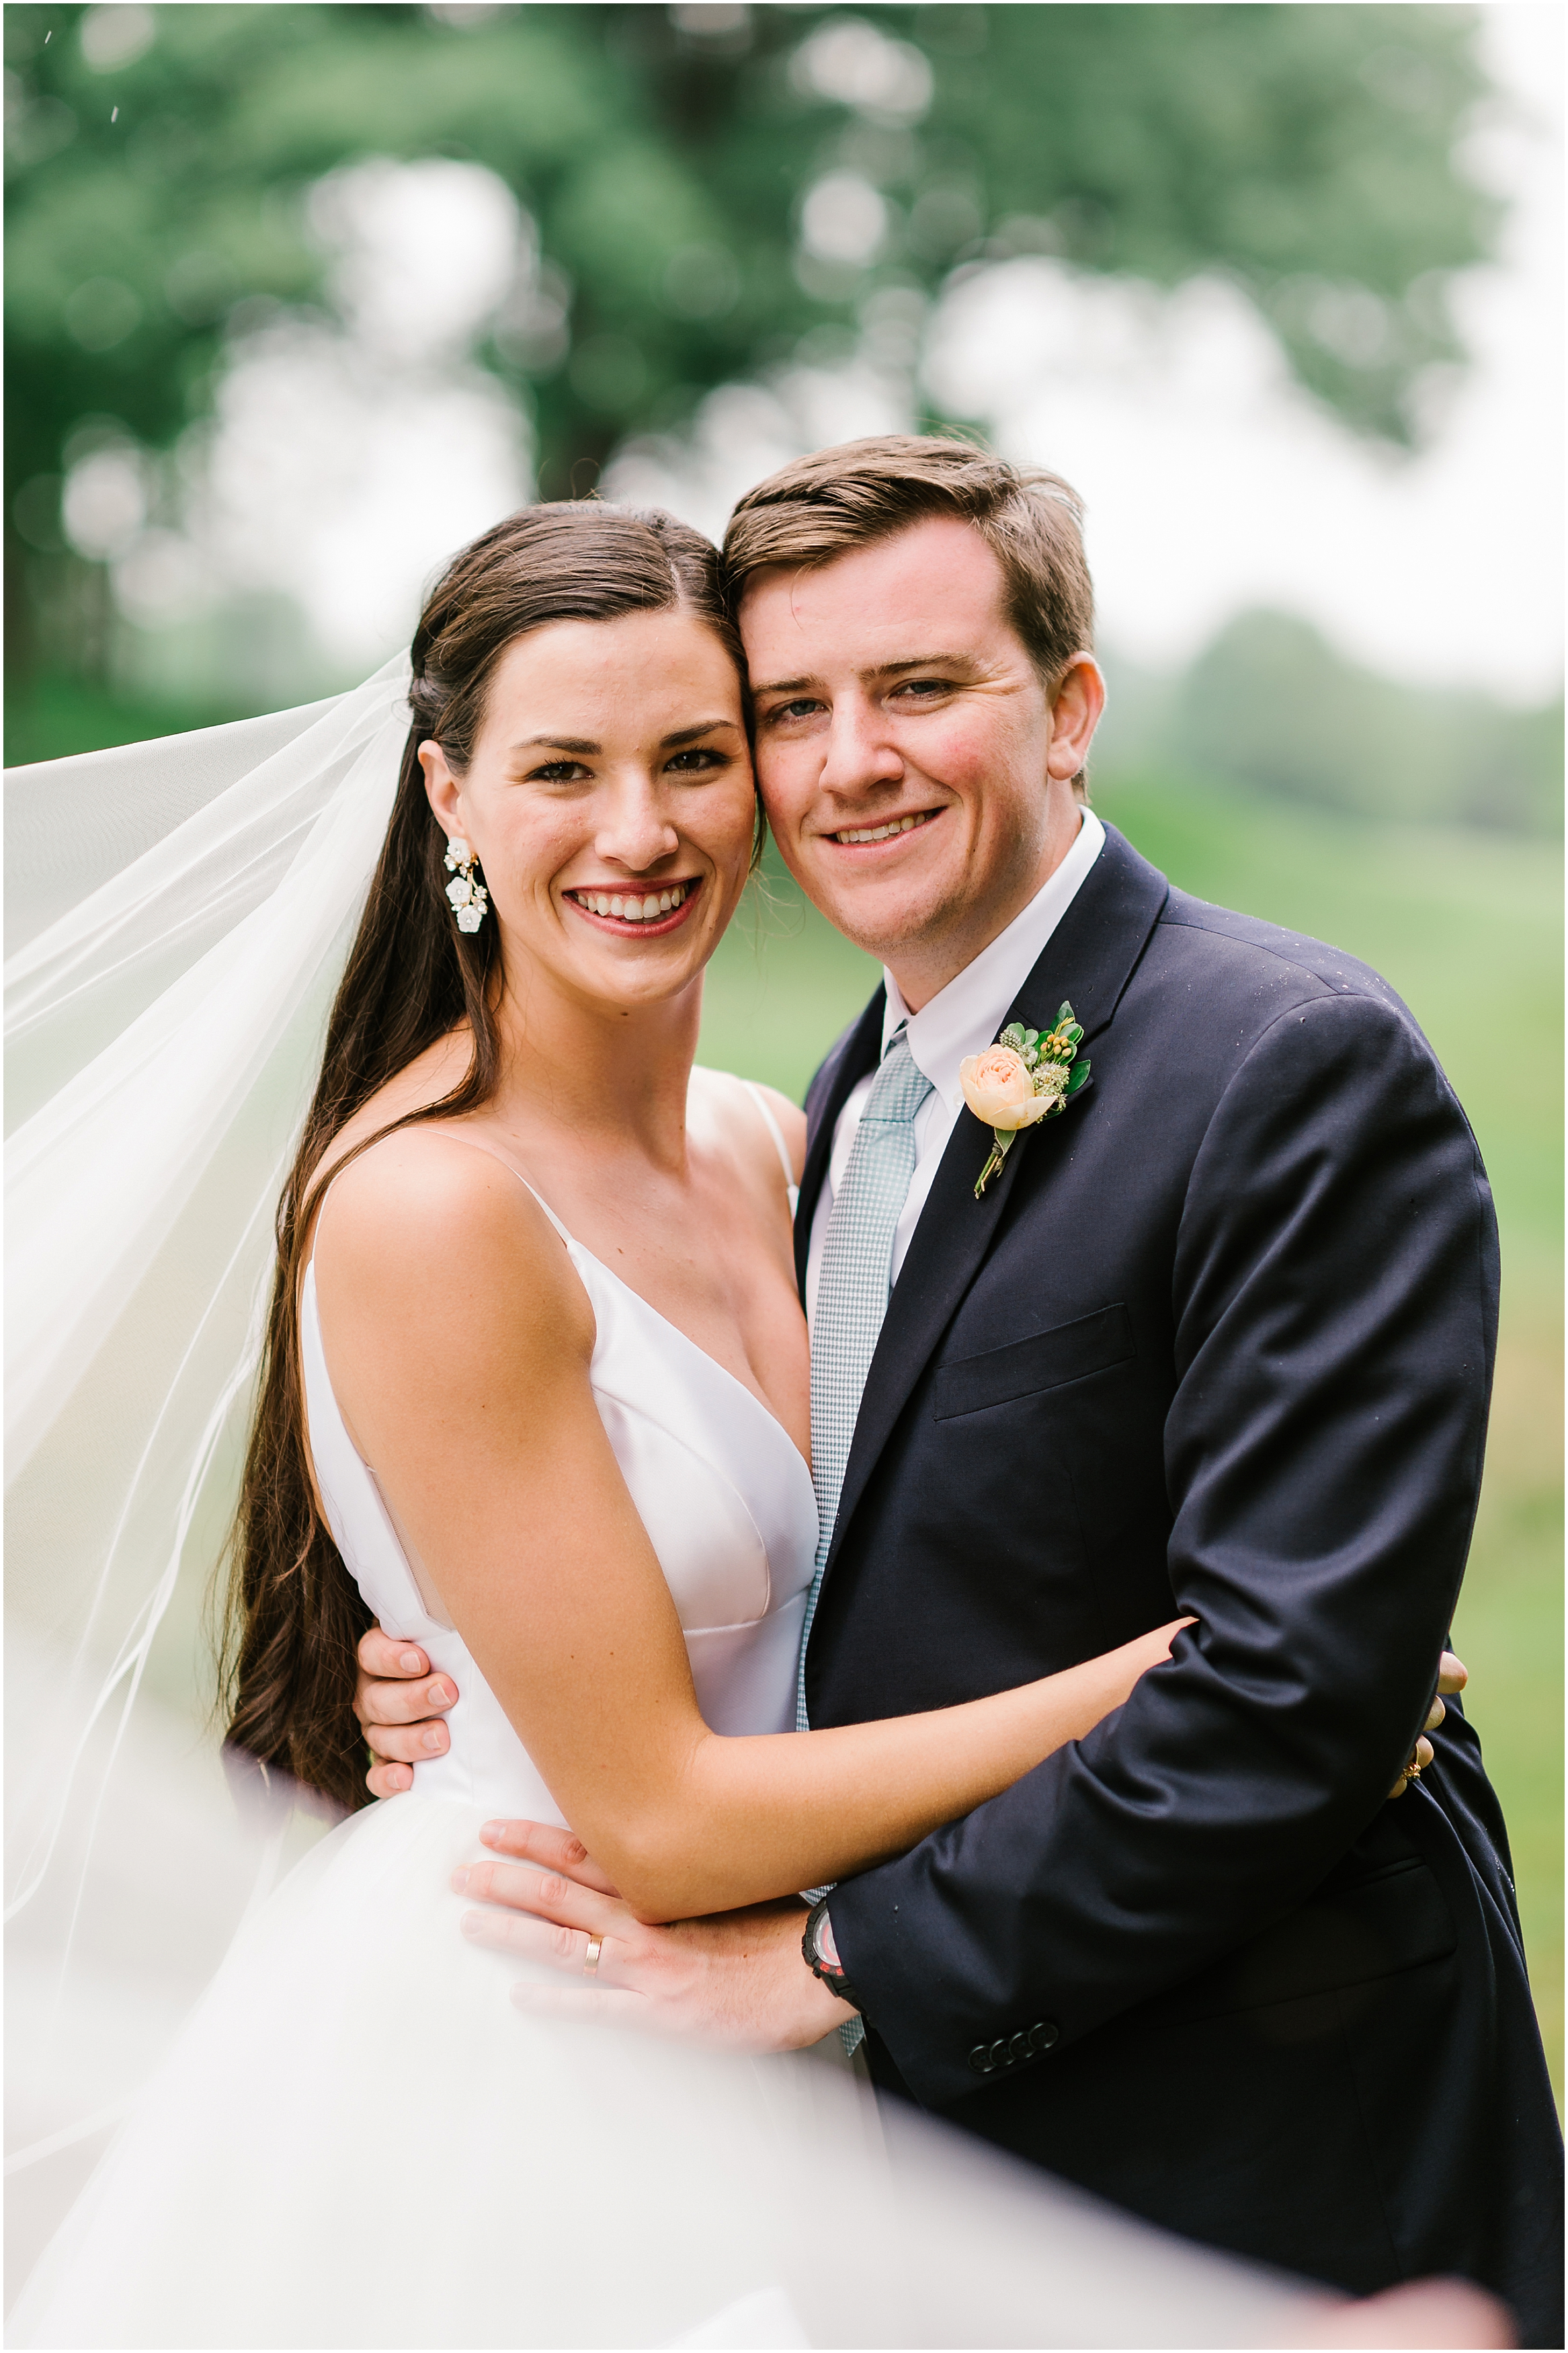 Rebecca Shehorn Photography Indianapolis Wedding Photographer Woodland Country Club Wedding_0208.jpg